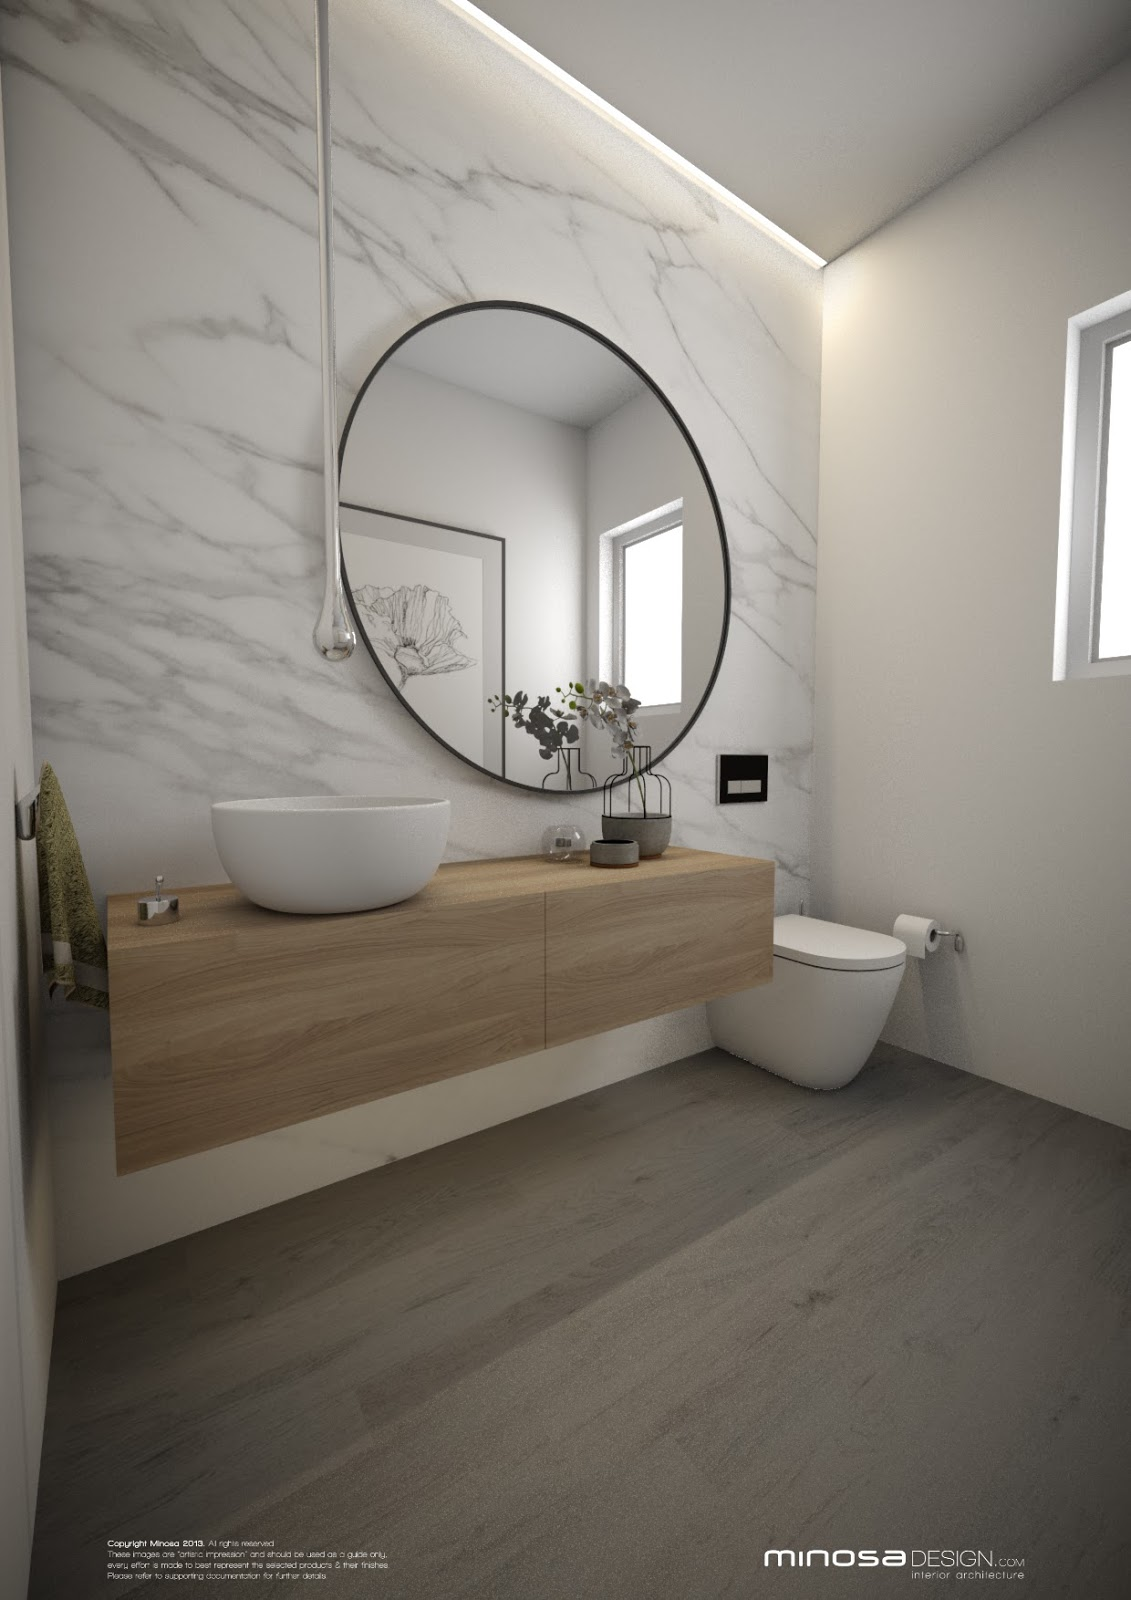 Minosa powder room the wow bathroom for Toilet room ideas